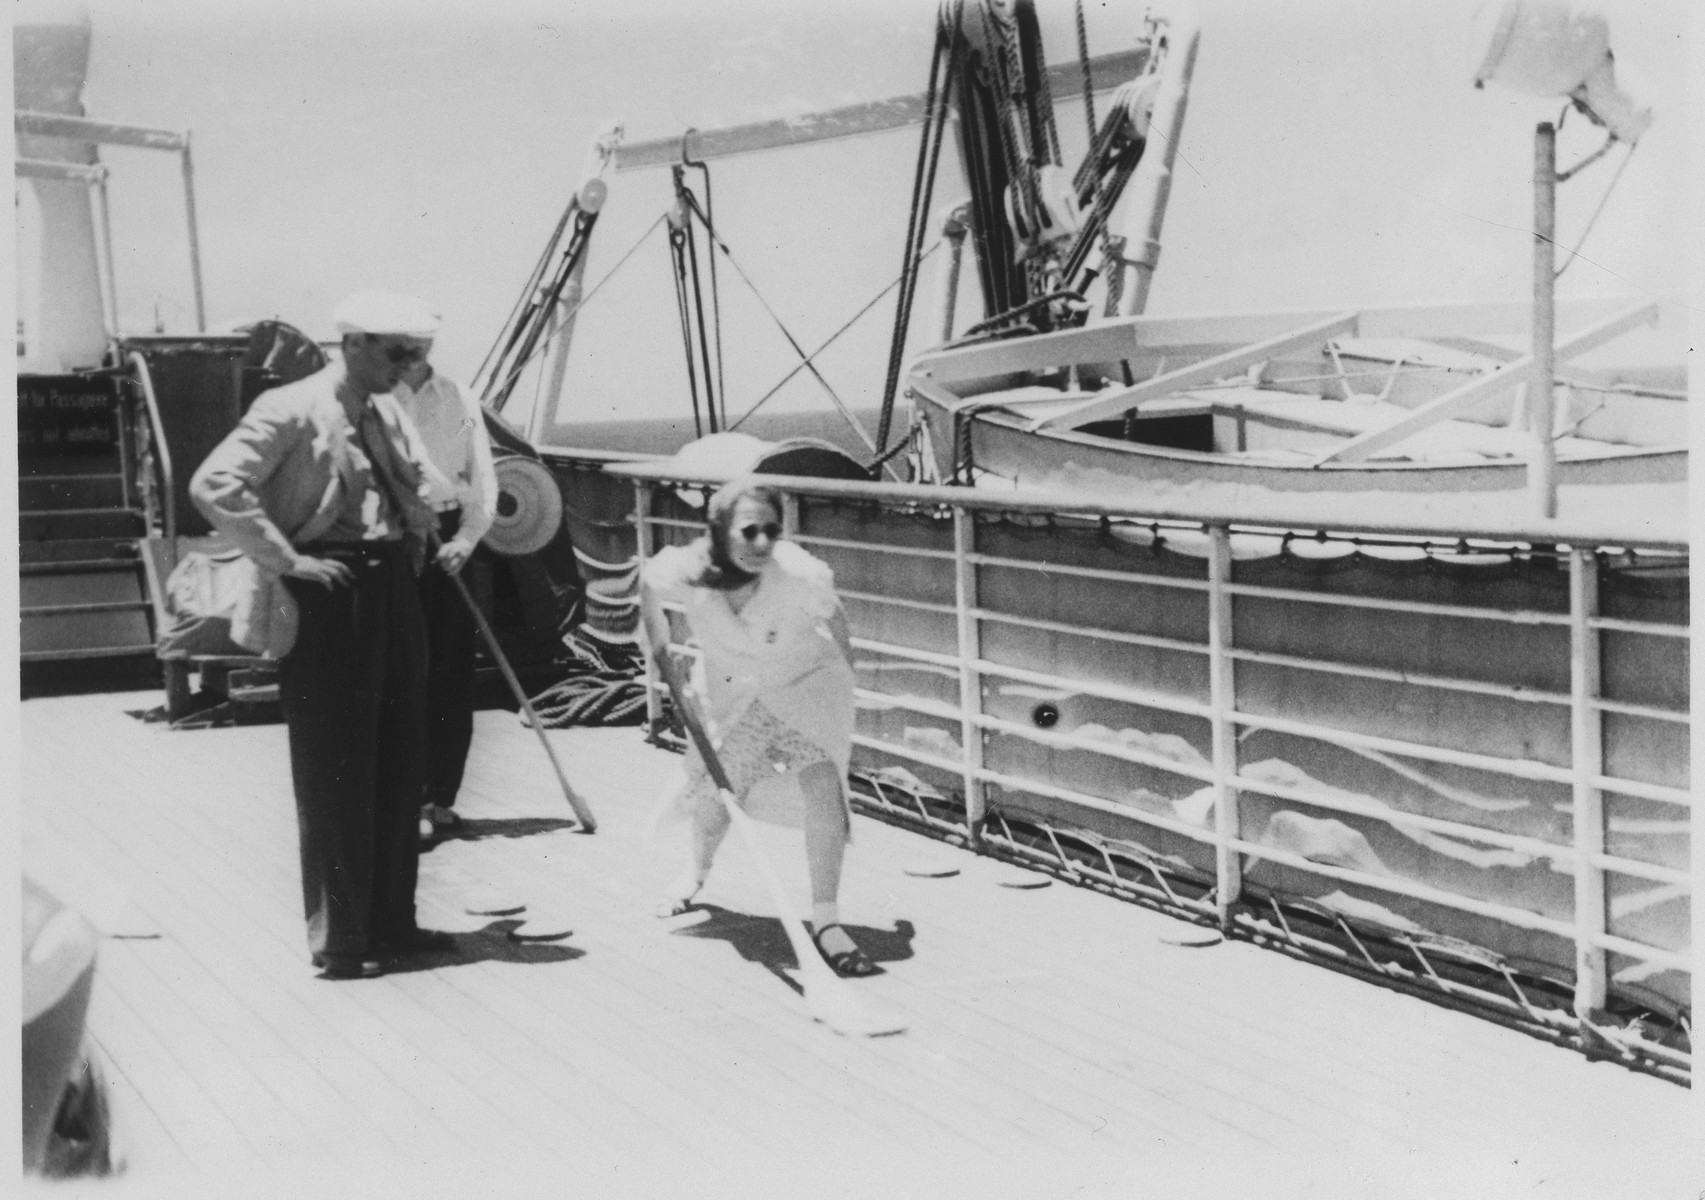 Passengers play shuffleboard on the deck of the MS St. Louis.